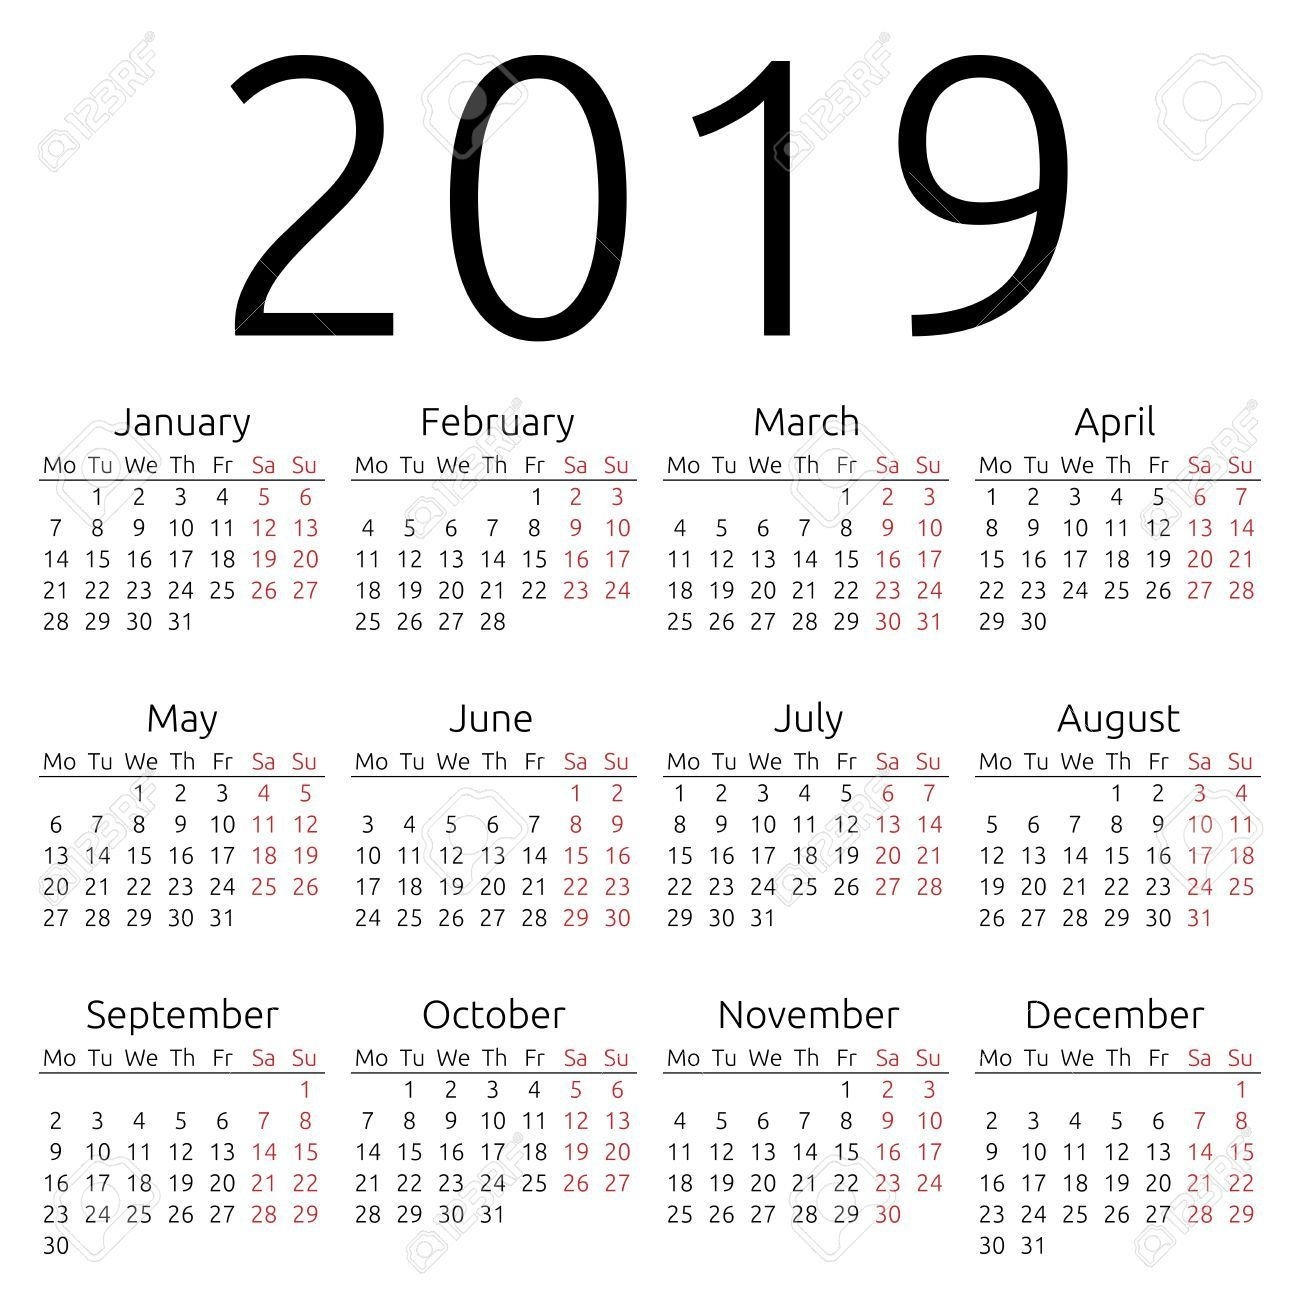 Calendar Templatevertex42 2019 | Calendar 2019 Vertex42 With Calendar 2019 Vertex 42